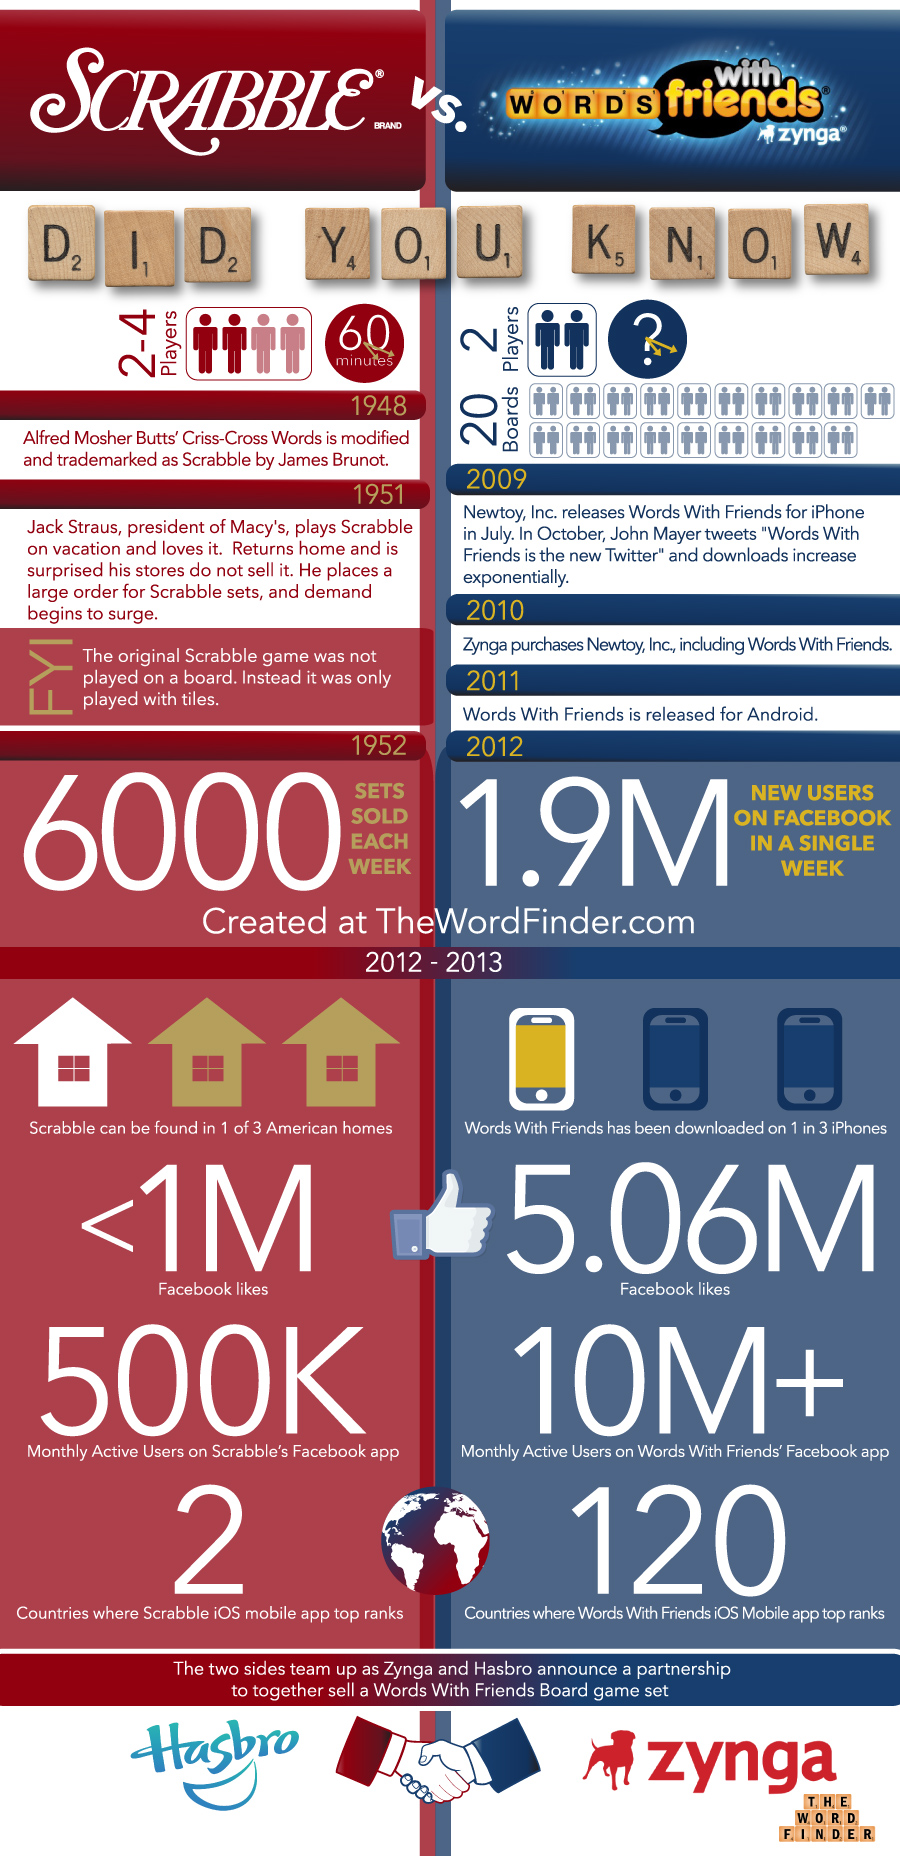 scrabble vs words with friends infographic